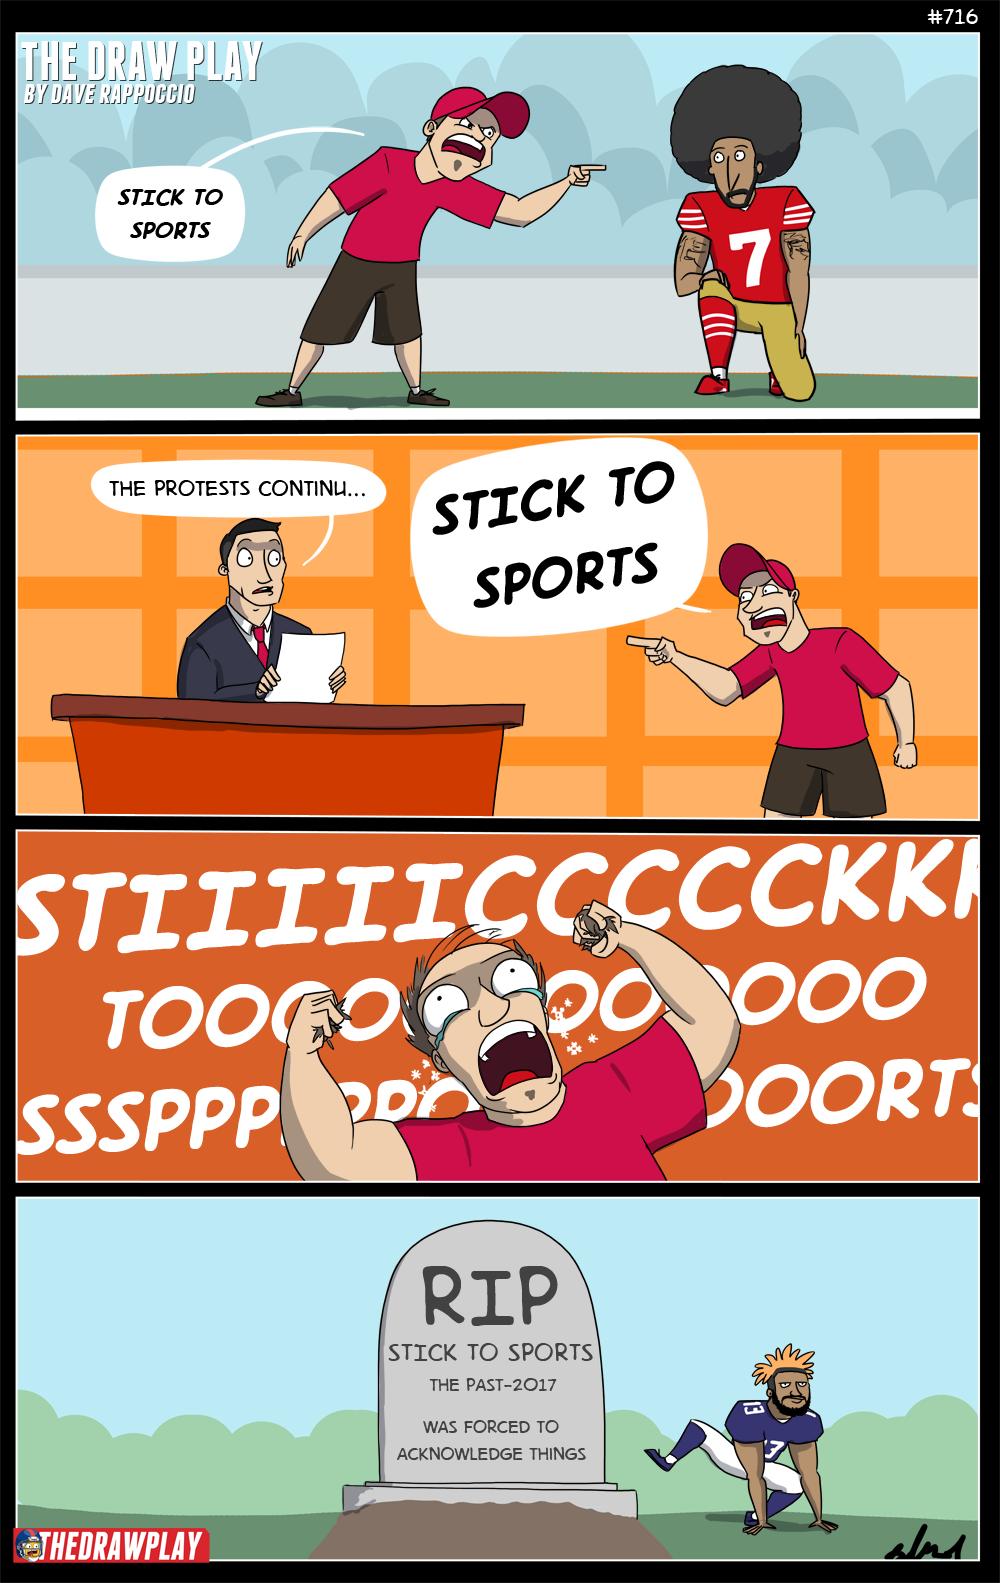 If someone tells you to #sticktosports, tell them to #sticktoyourprofession, and see what happens. Bring popcorn.